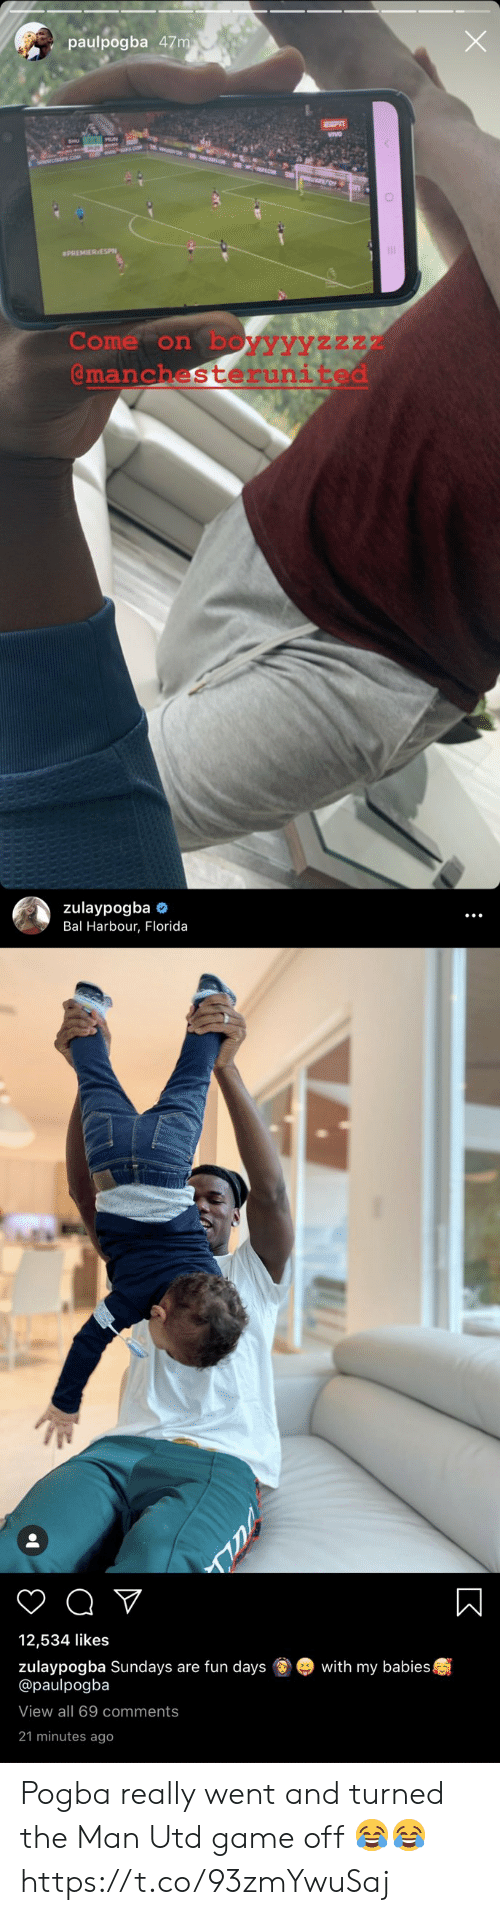 pogba: X  paulpogba 47m  SPT  aPREMIERESPN  Come on boyyyyzzz7  @manchesterunited   zulaypogba  Bal Harbour, Florida  12,534 likes  zulaypogba Sundays are fun days  @paulpogba  with my babies  View all 69 comments  21 minutes ago Pogba really went and turned the Man Utd game off 😂😂 https://t.co/93zmYwuSaj